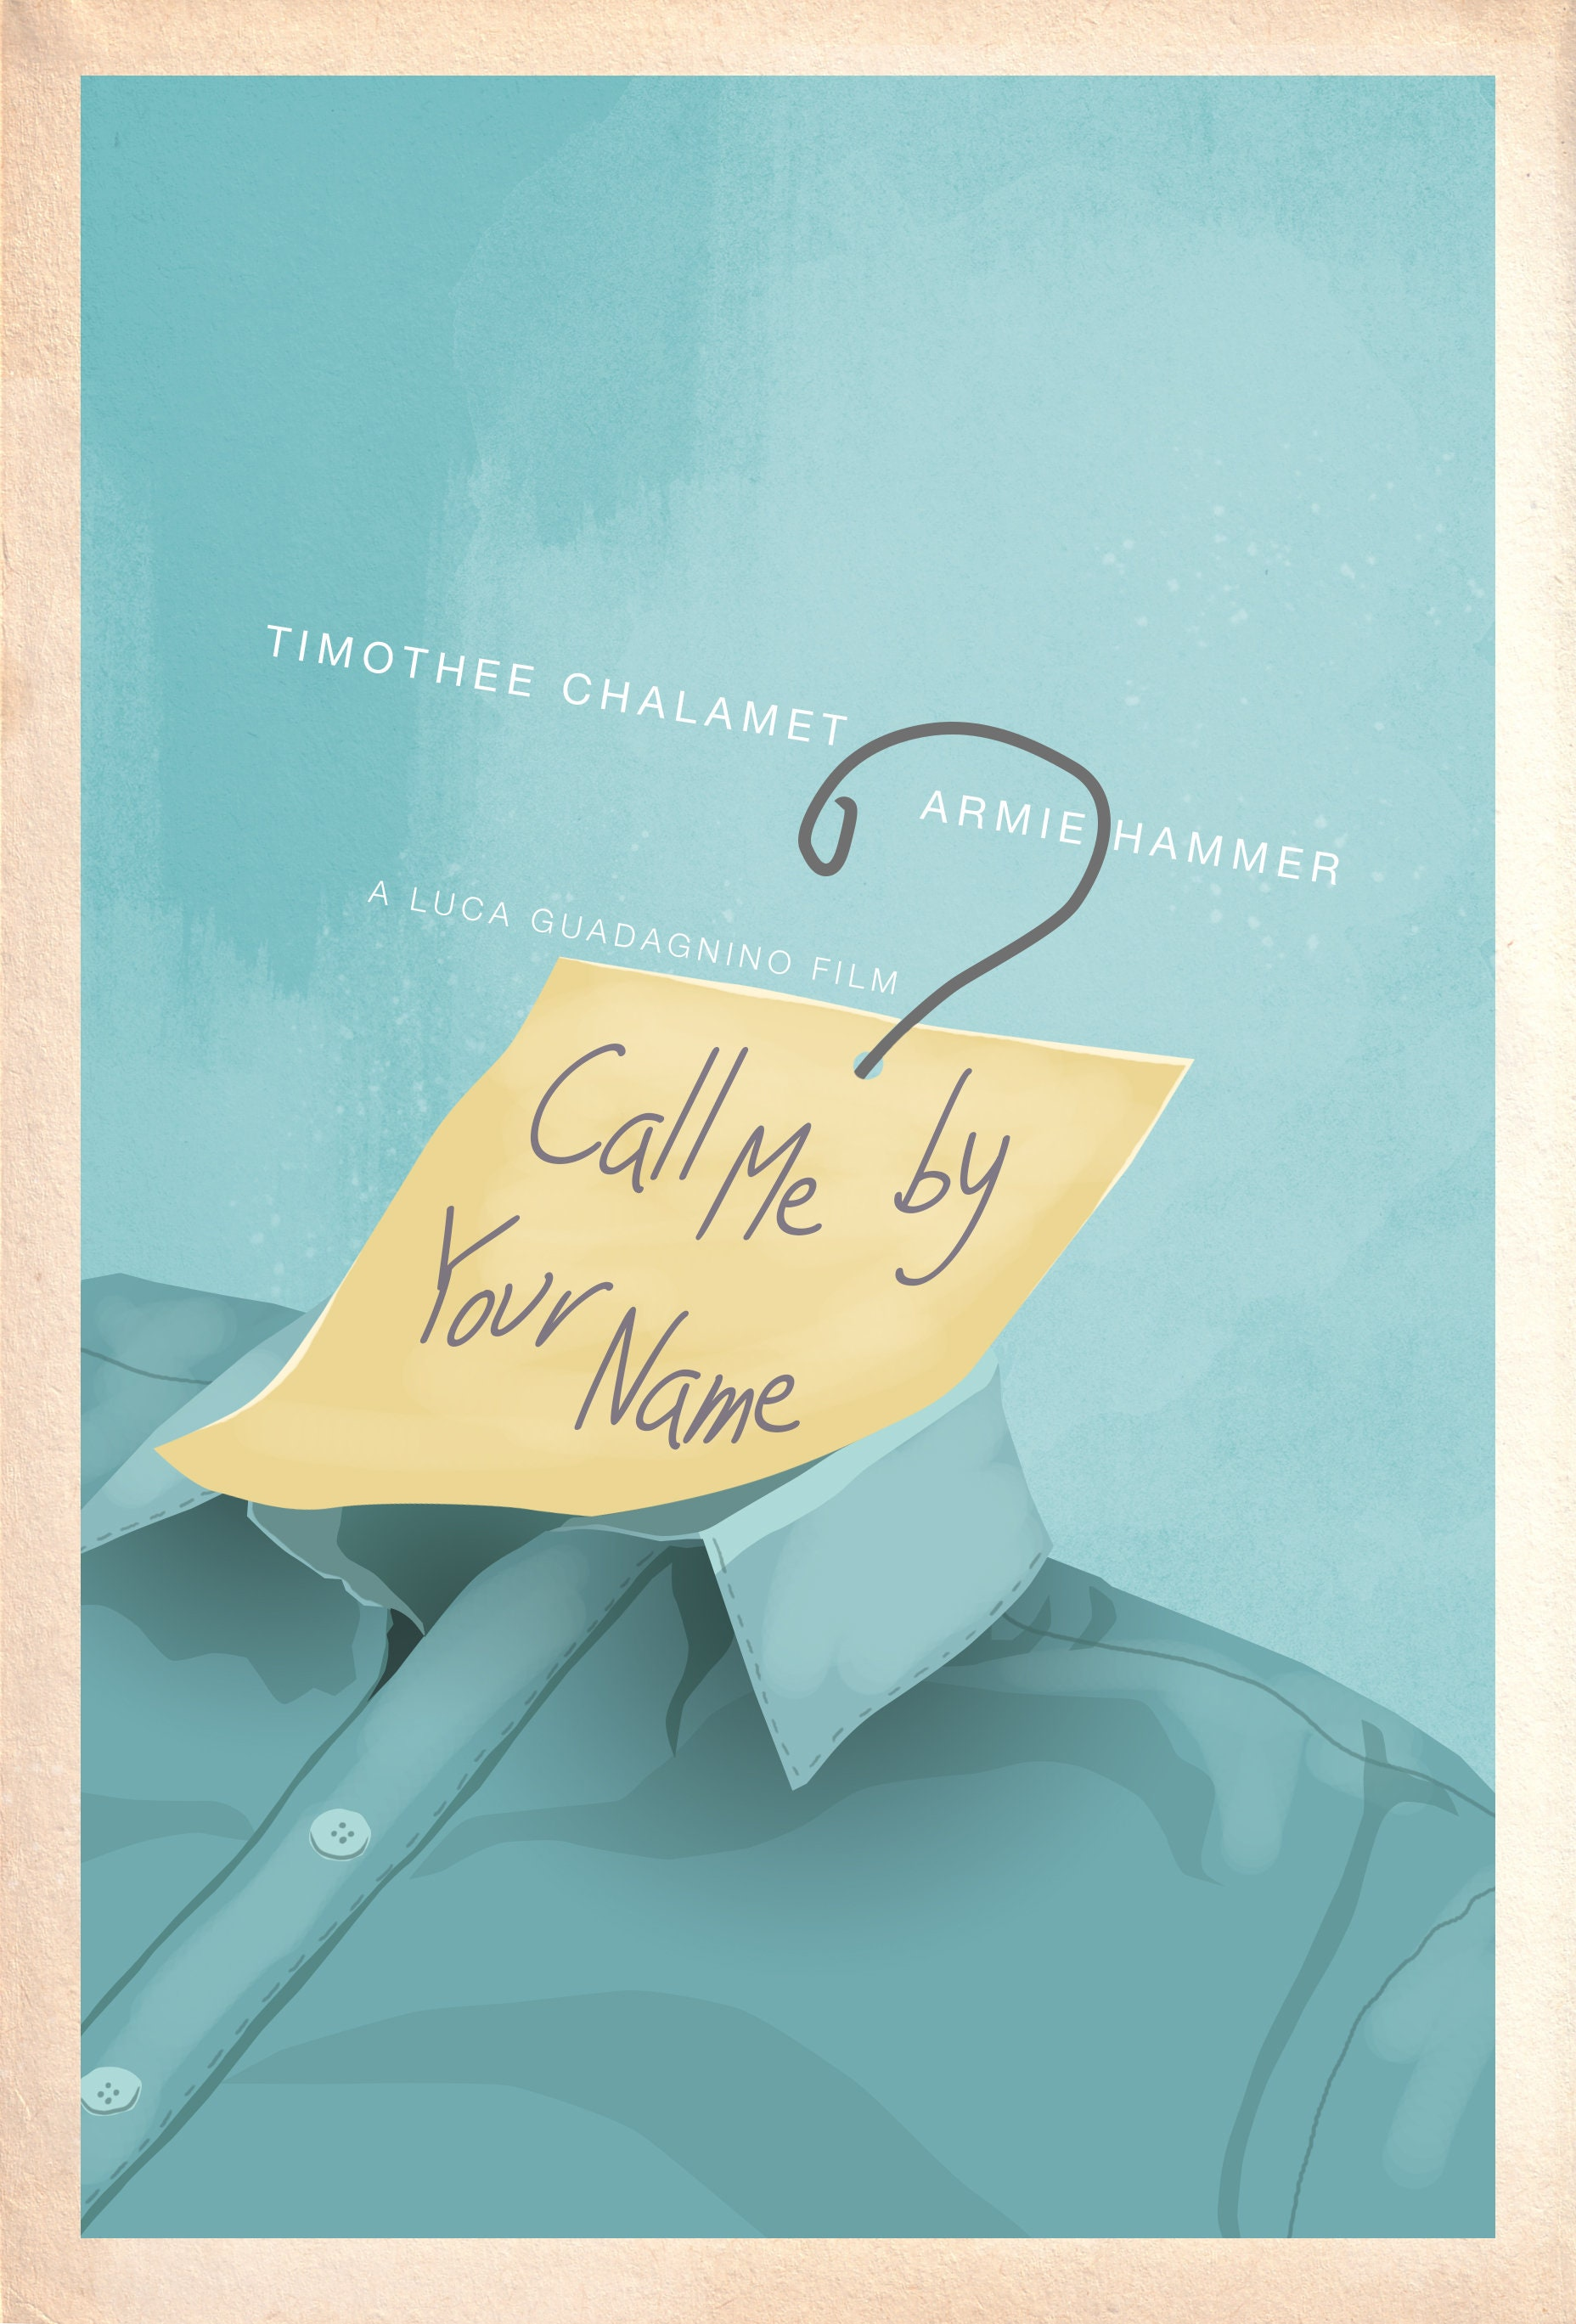 Minimalist Poster Design Of Call Me By Your Name Etsy